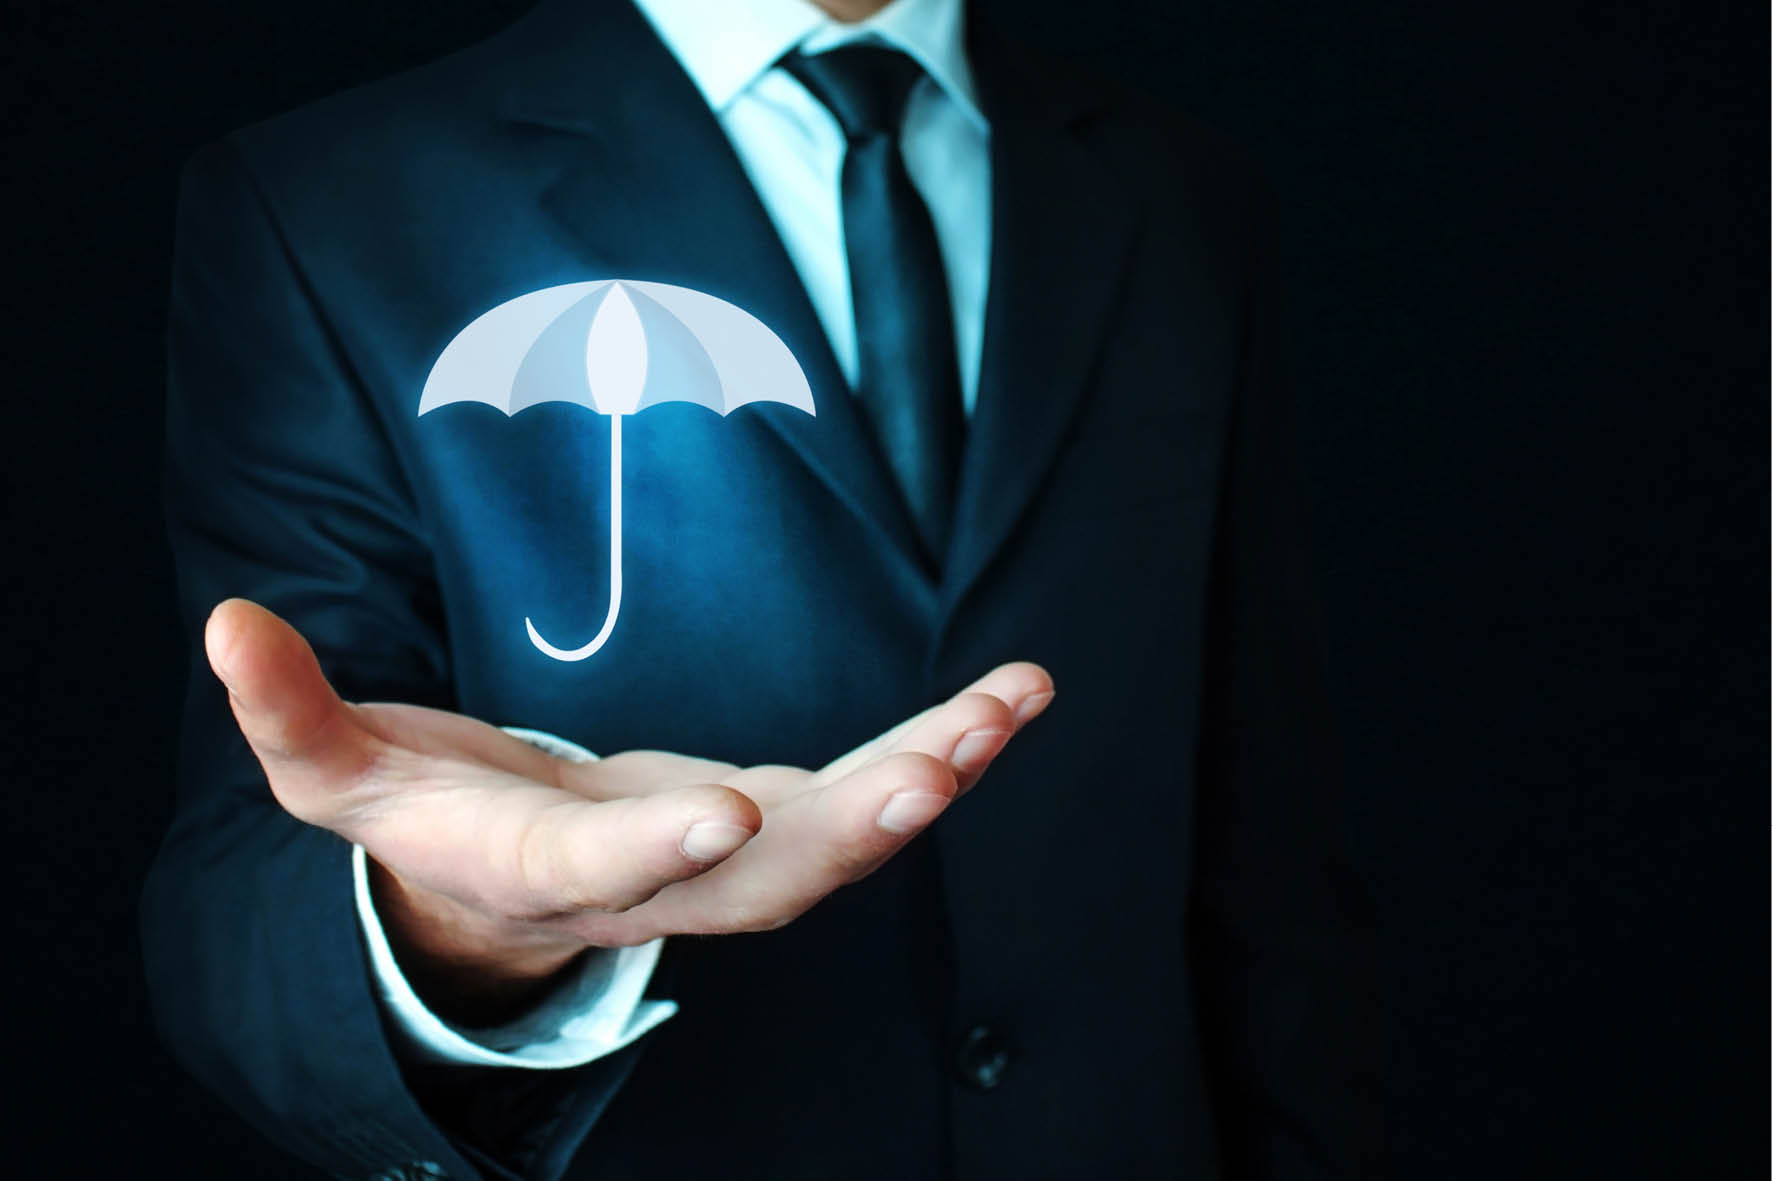 FCA Umbrella Services - For prospective fund managers